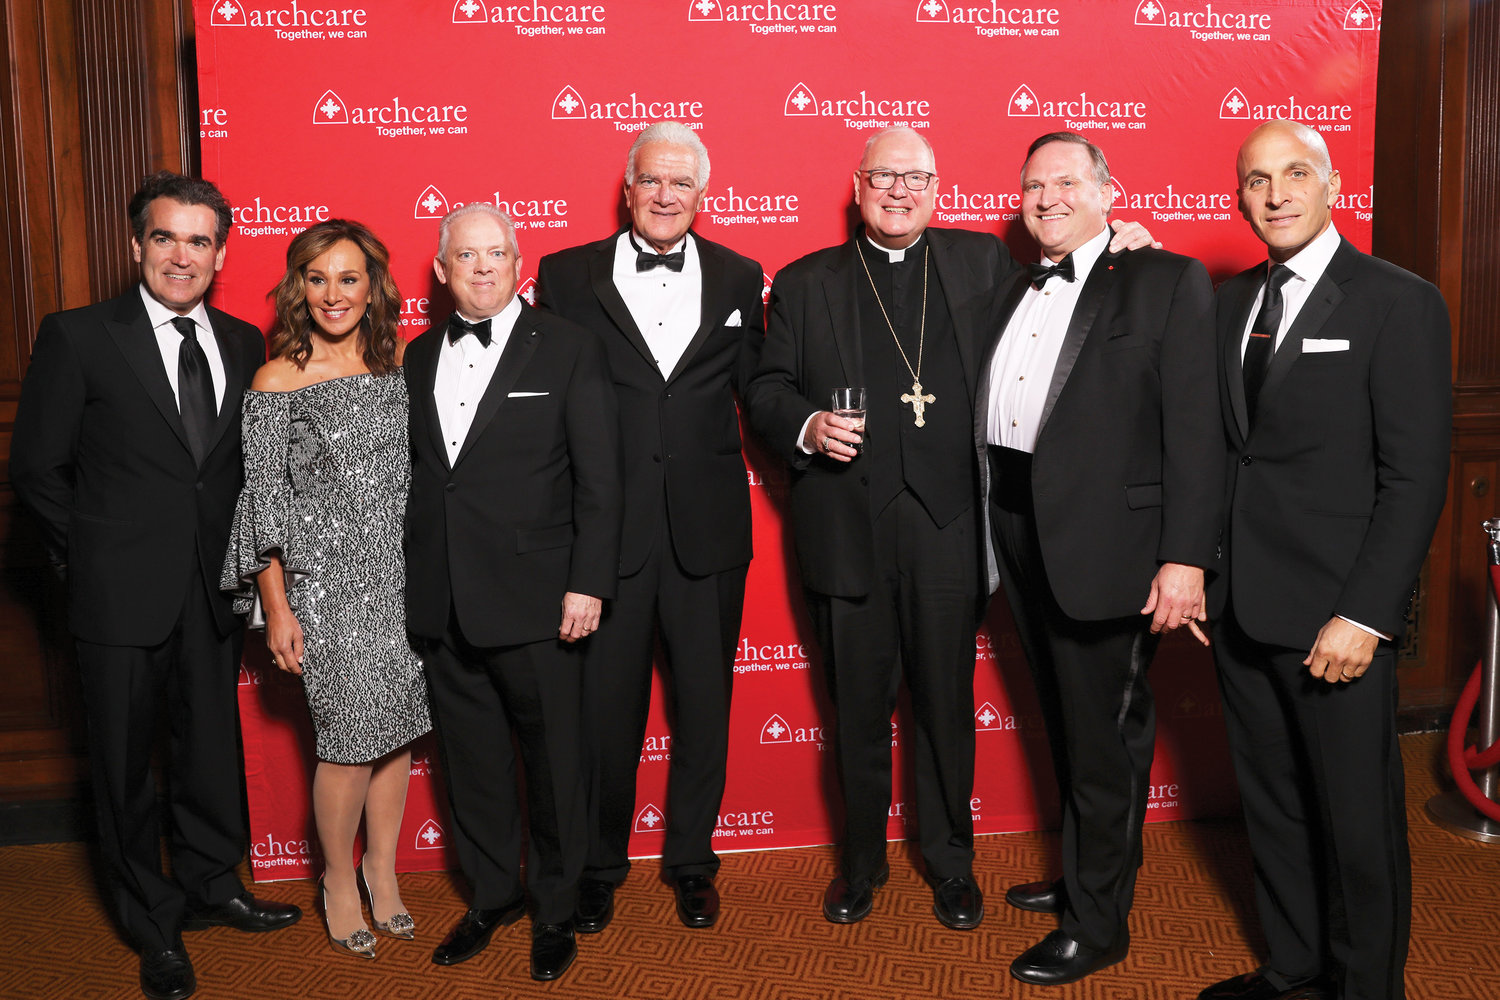 Cardinal Dolan greets Brian d'Arcy James, actor and musician; Rosanna Scotto, co-host of FOX5's Good Day New York; Scott LaRue, president and CEO of ArchCare; Dr. Anthony Bacchi, M.D., founder and CEO of TeliStat; Steve Schott, principal of CapTrust Financial Advisors; and Pete Bevacqua, president of NBC Sports Group, at the ArchCare Gala Oct. 25. Dr. Bacchi and Schott were honored for their support of ArchCare, the archdiocese's health care system.